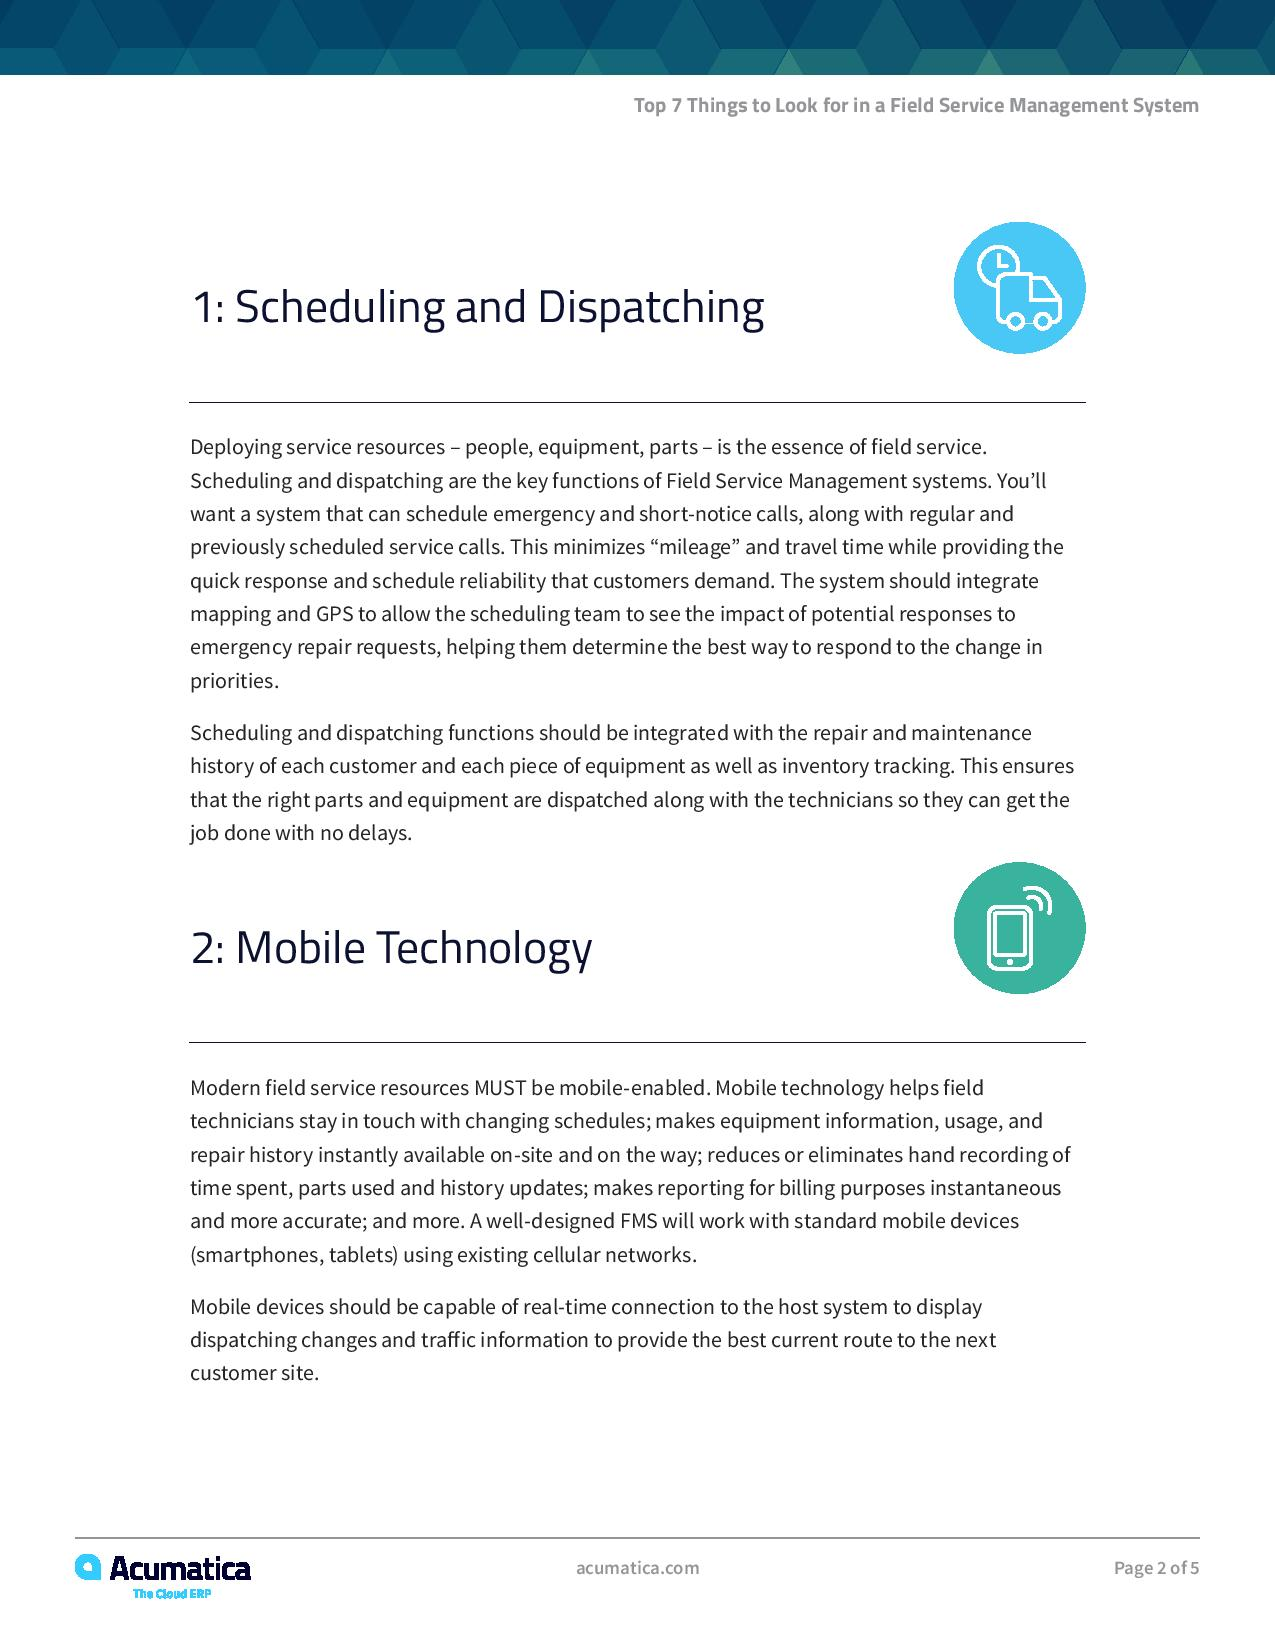 Top 7 Things to Look For in a Field Service Management System, page 1